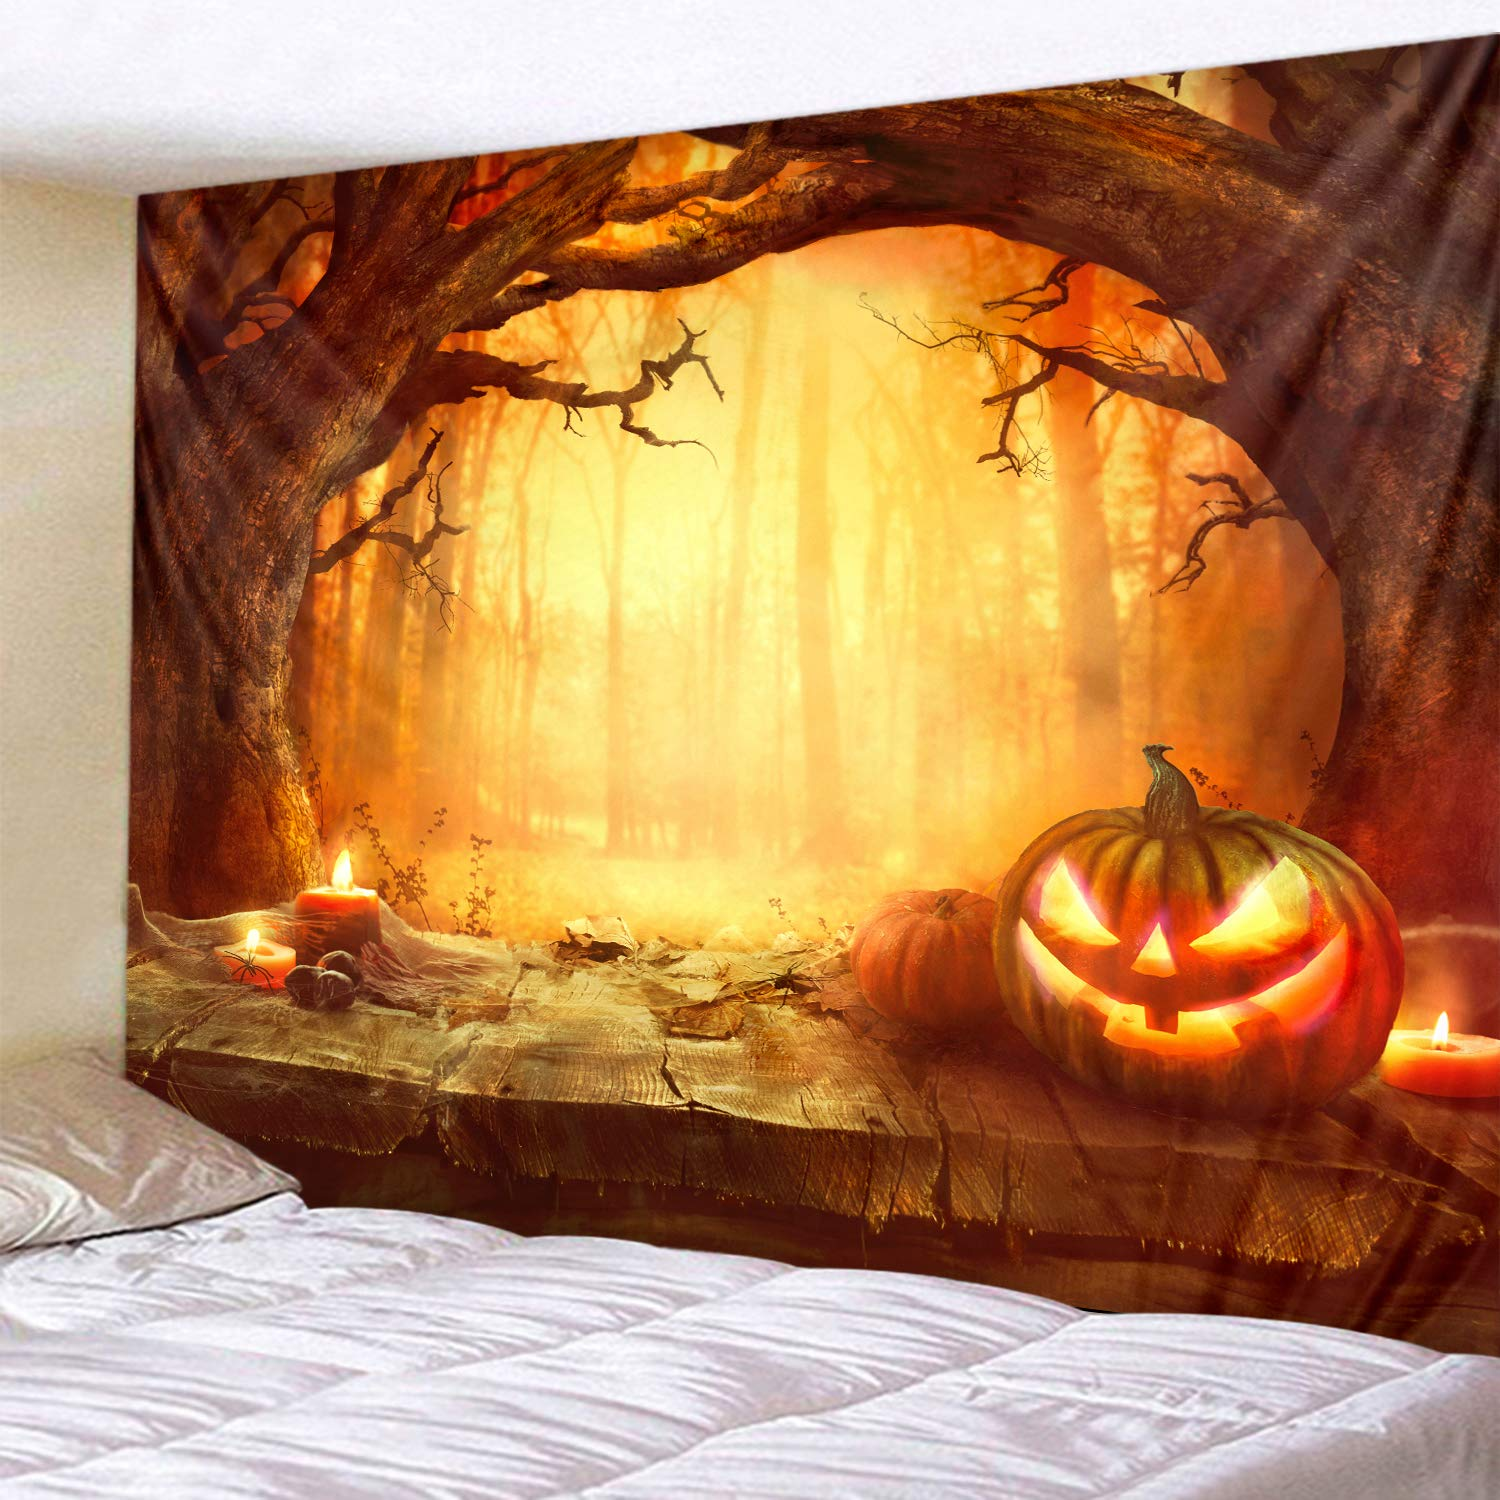 Halloween Orange Grove Pumpkin Print Decorative Throw Fabric Tapestry Wall Hanging Art Decor for Living Room and Bedroom 79 x 59 Inches